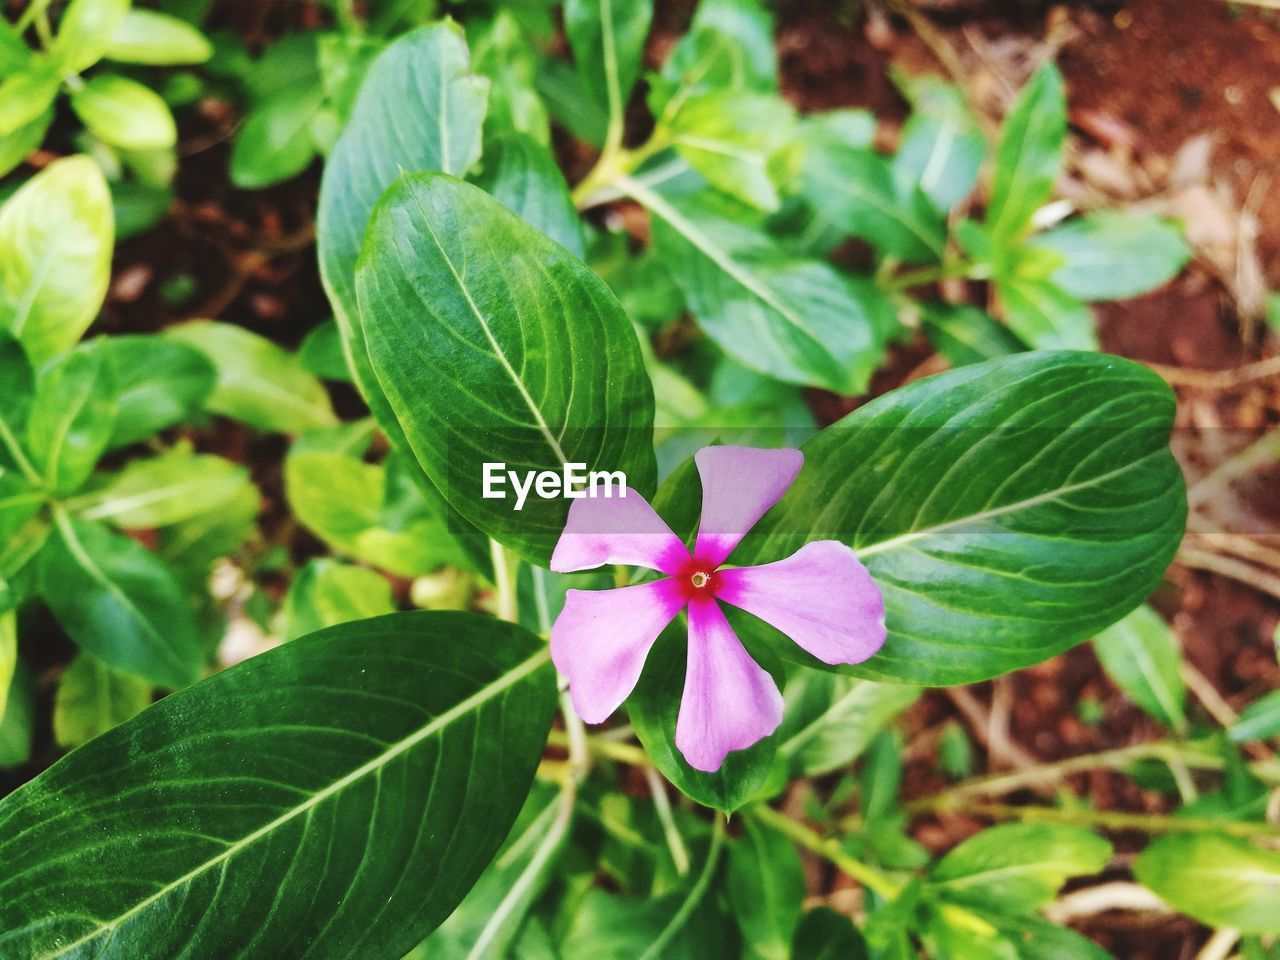 leaf, flower, petal, green color, growth, fragility, beauty in nature, freshness, periwinkle, flower head, nature, plant, blooming, close-up, pink color, day, outdoors, no people